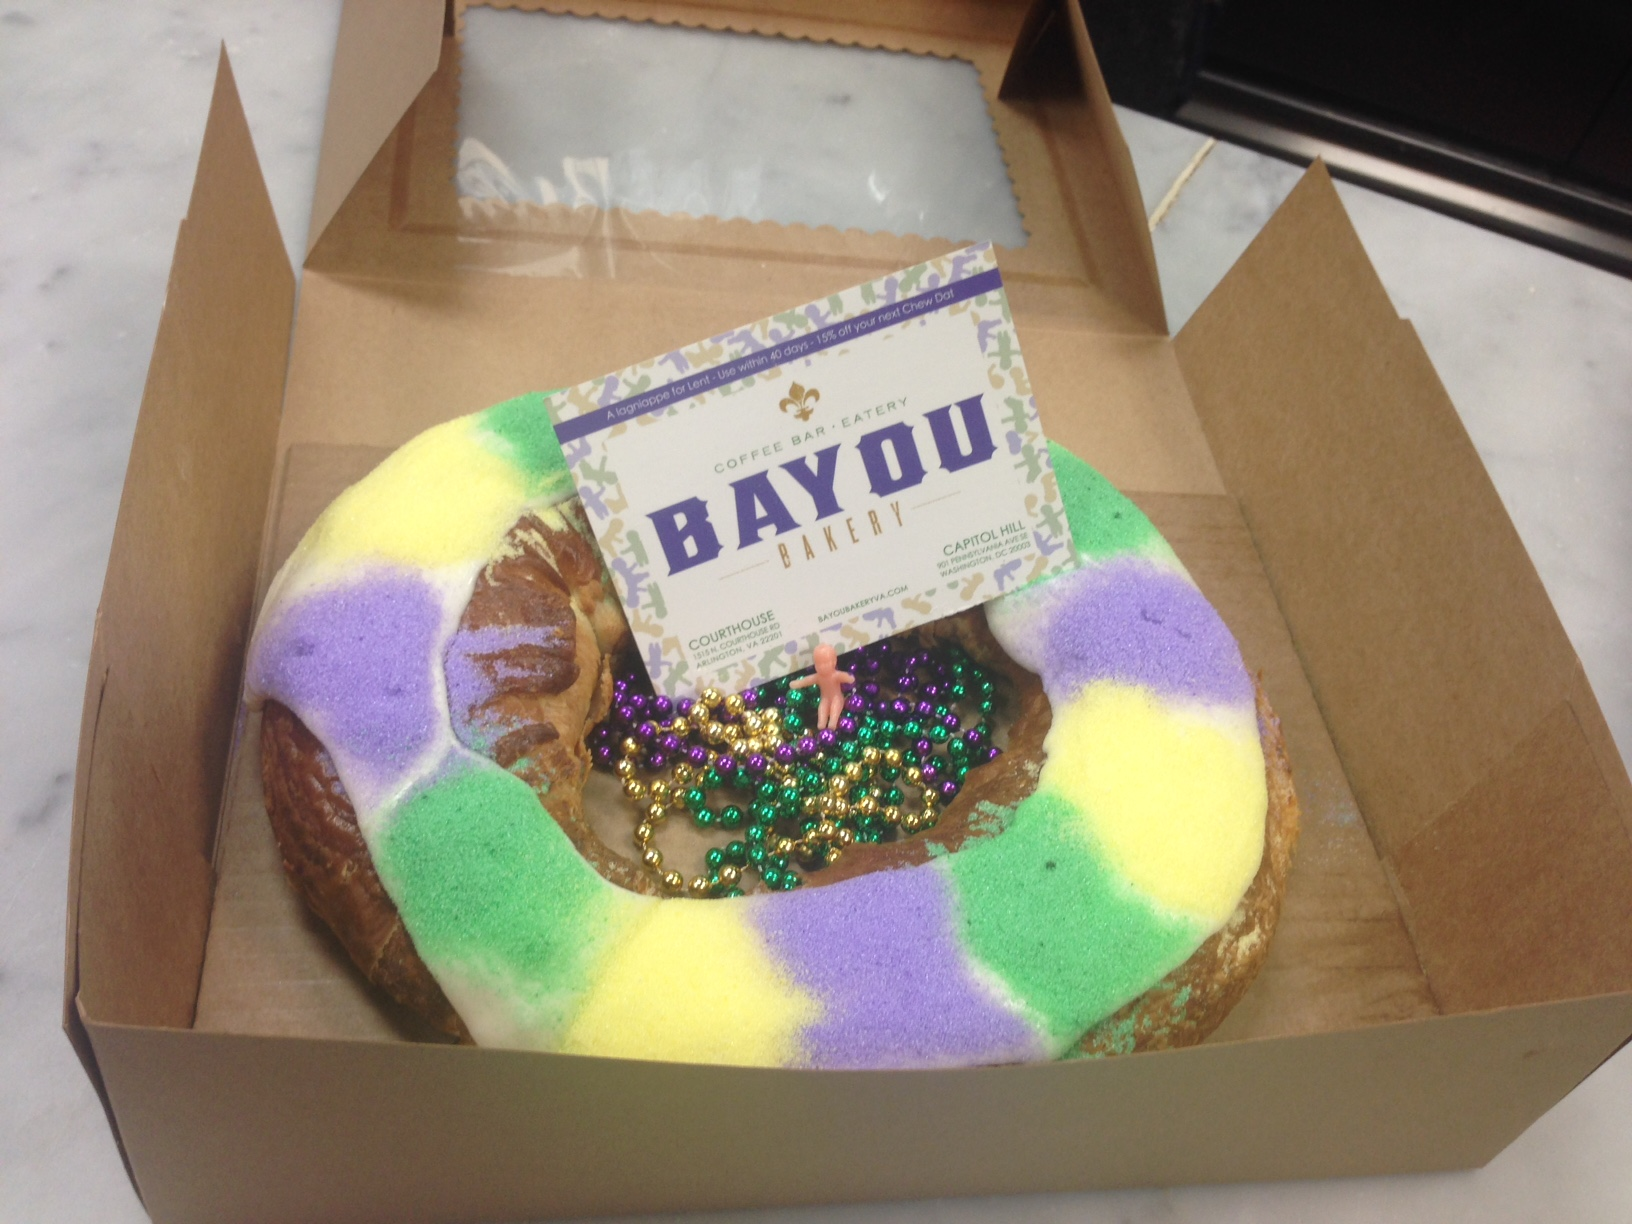 Let them eat king cake: The history, ingredients behind the Mardi Gras classic